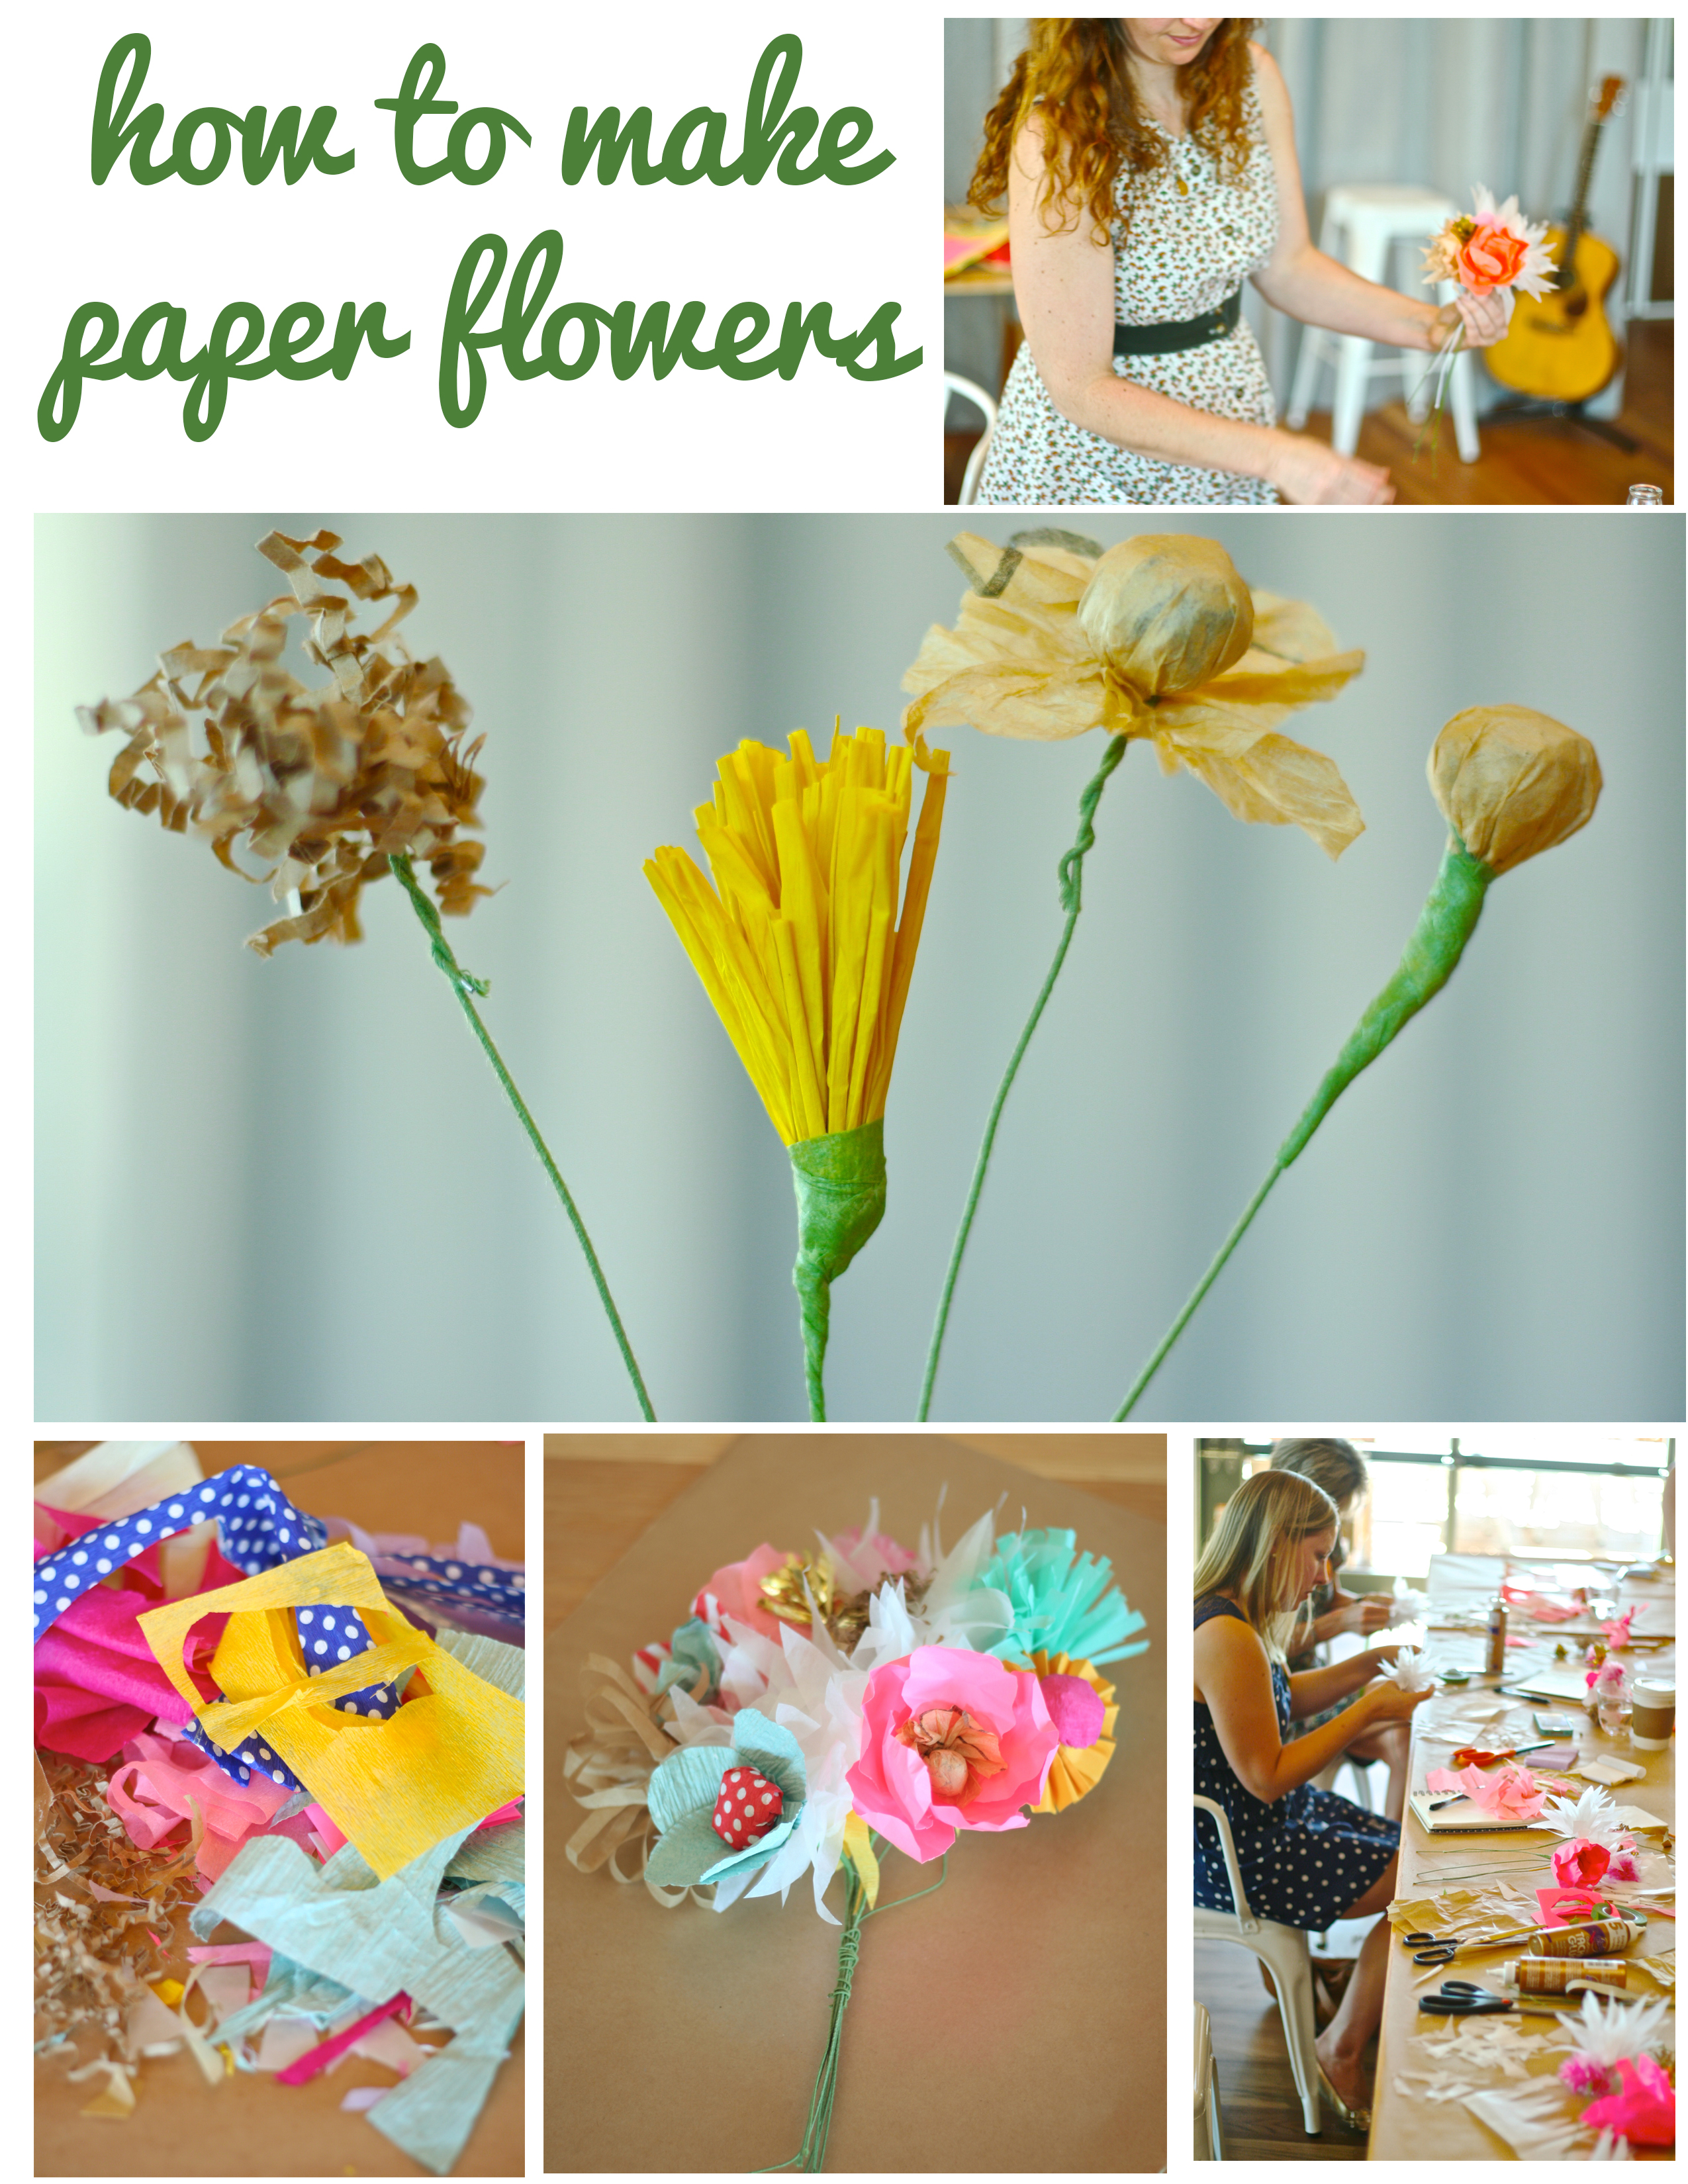 How To Make Handmade Flowers From Paper How To Make Paper Flowers With Courtney Cerruti Dear